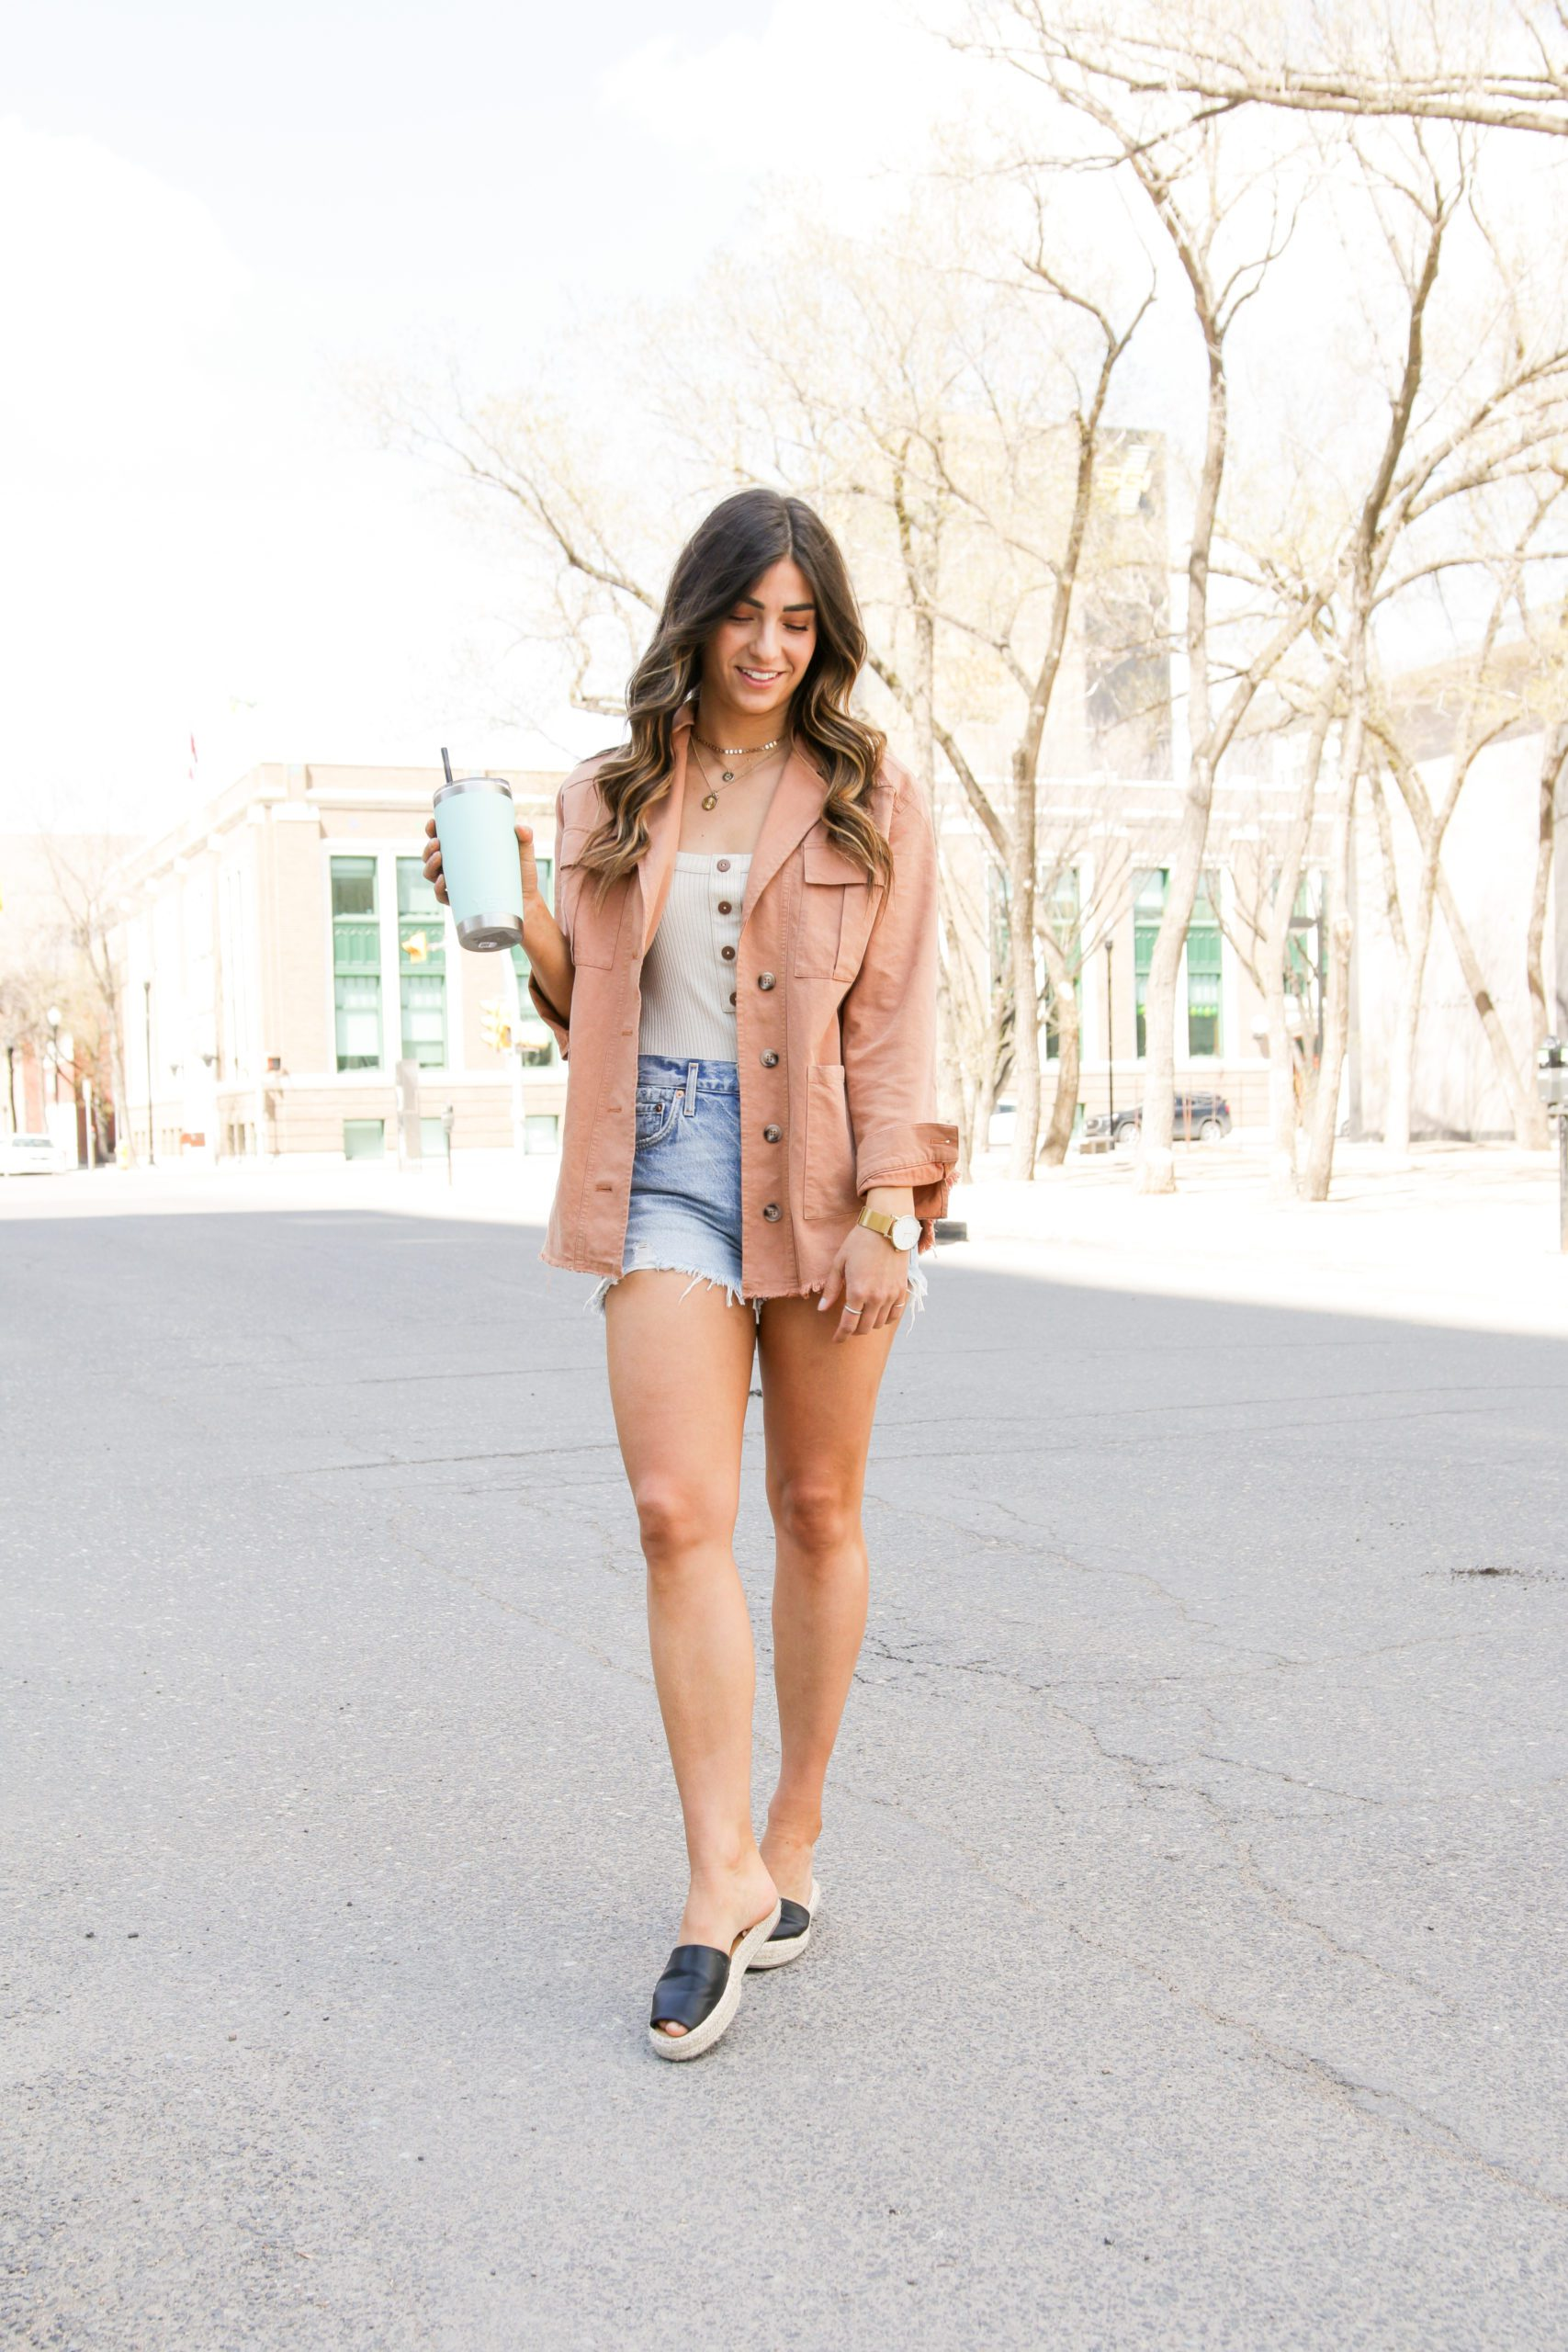 Styling a spring jacket